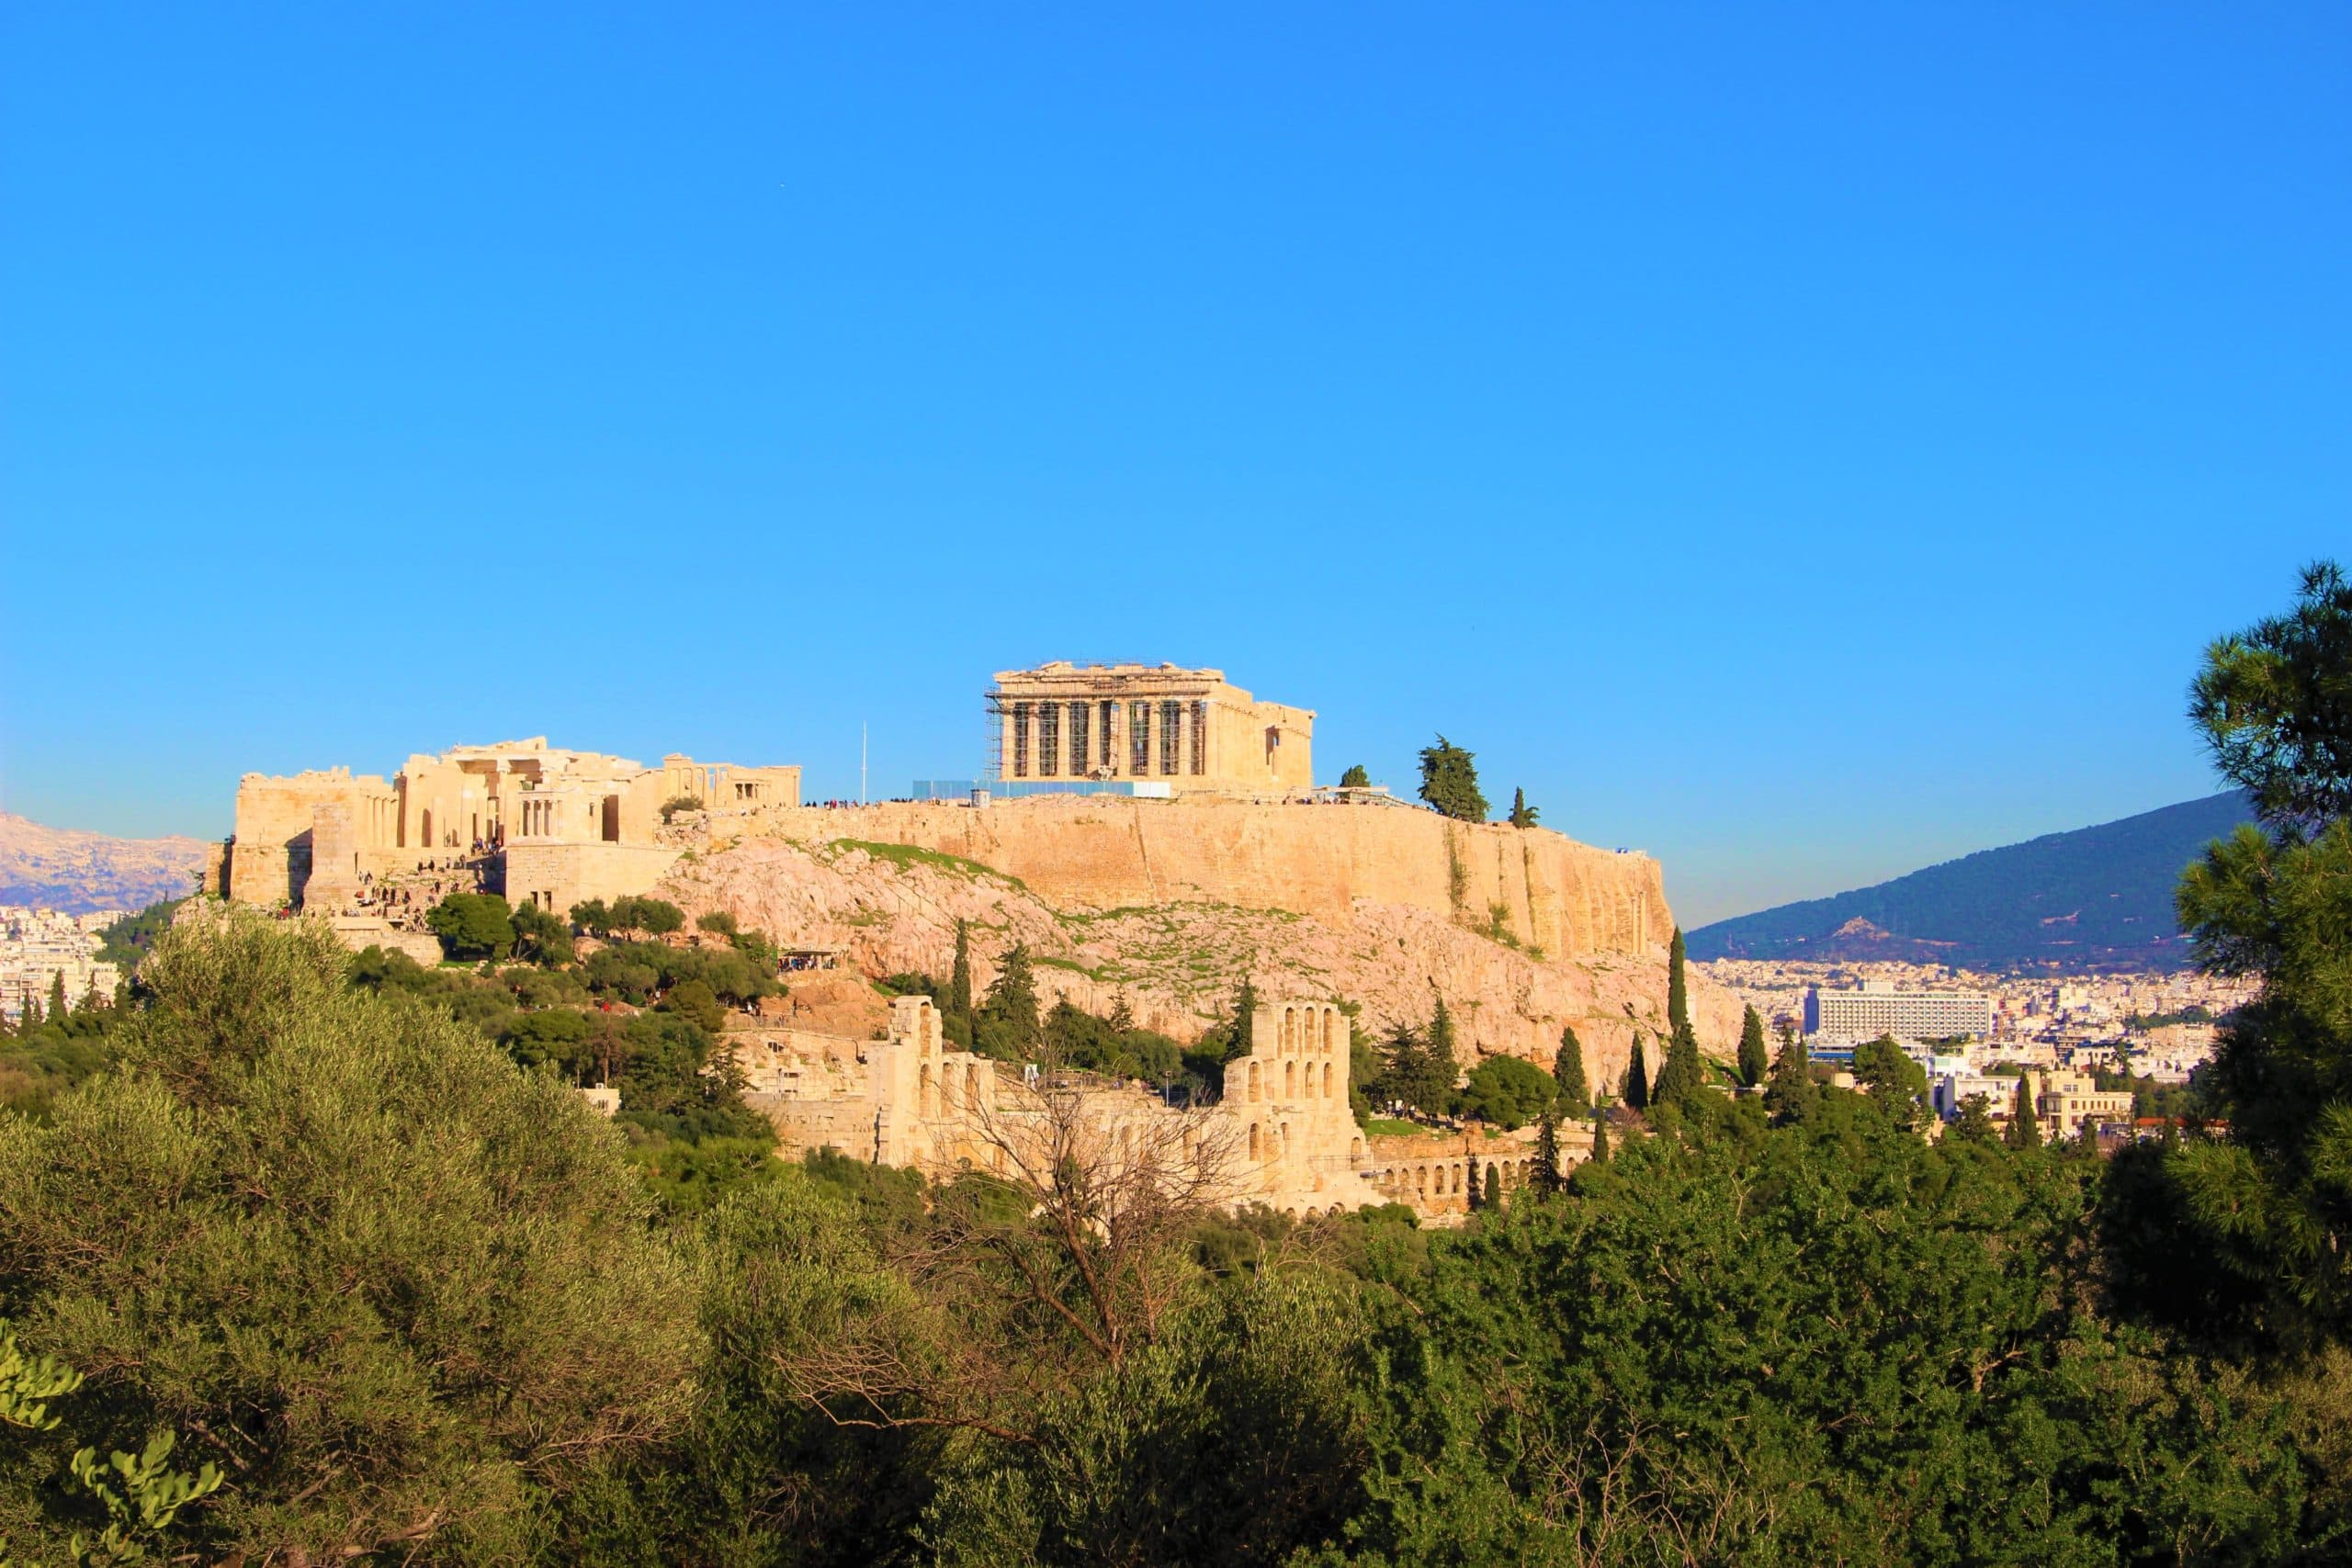 Why is the Parthenon important, special and famous?